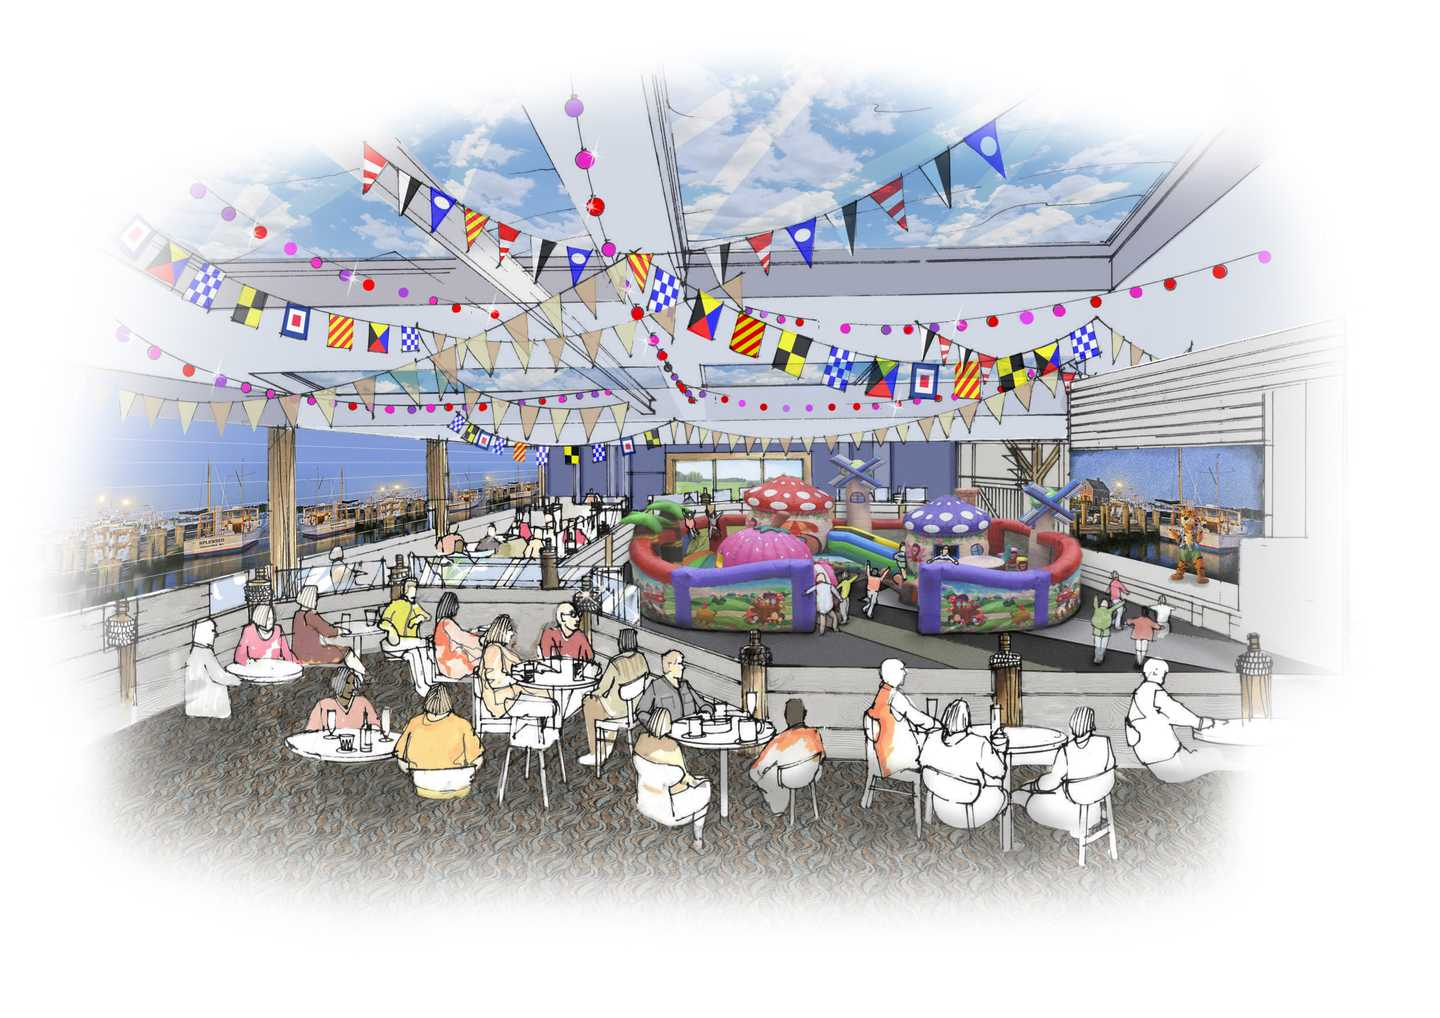 Artist's impression of The Marina stage